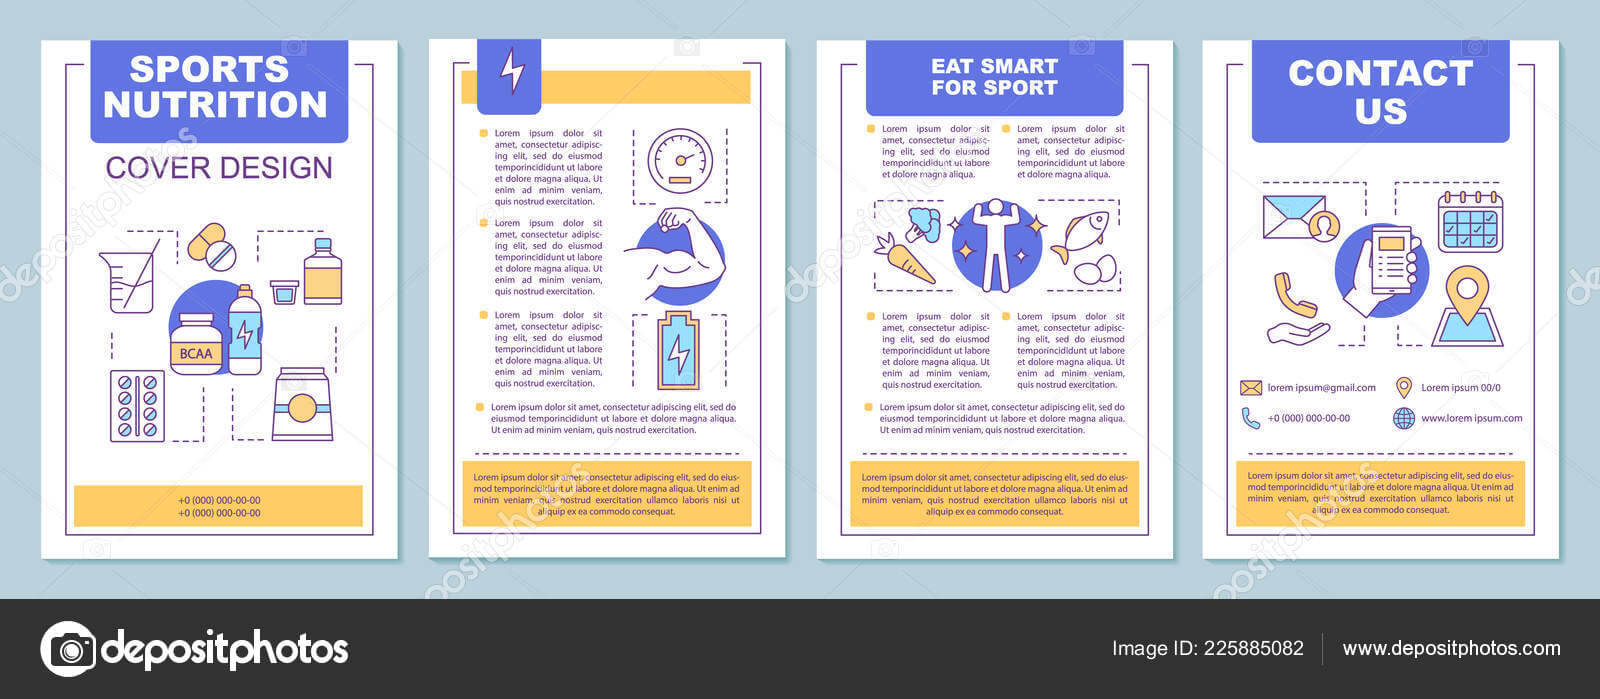 Sports Nutrition Brochure Template Layout Bcaa Proteins regarding Nutrition Brochure Template